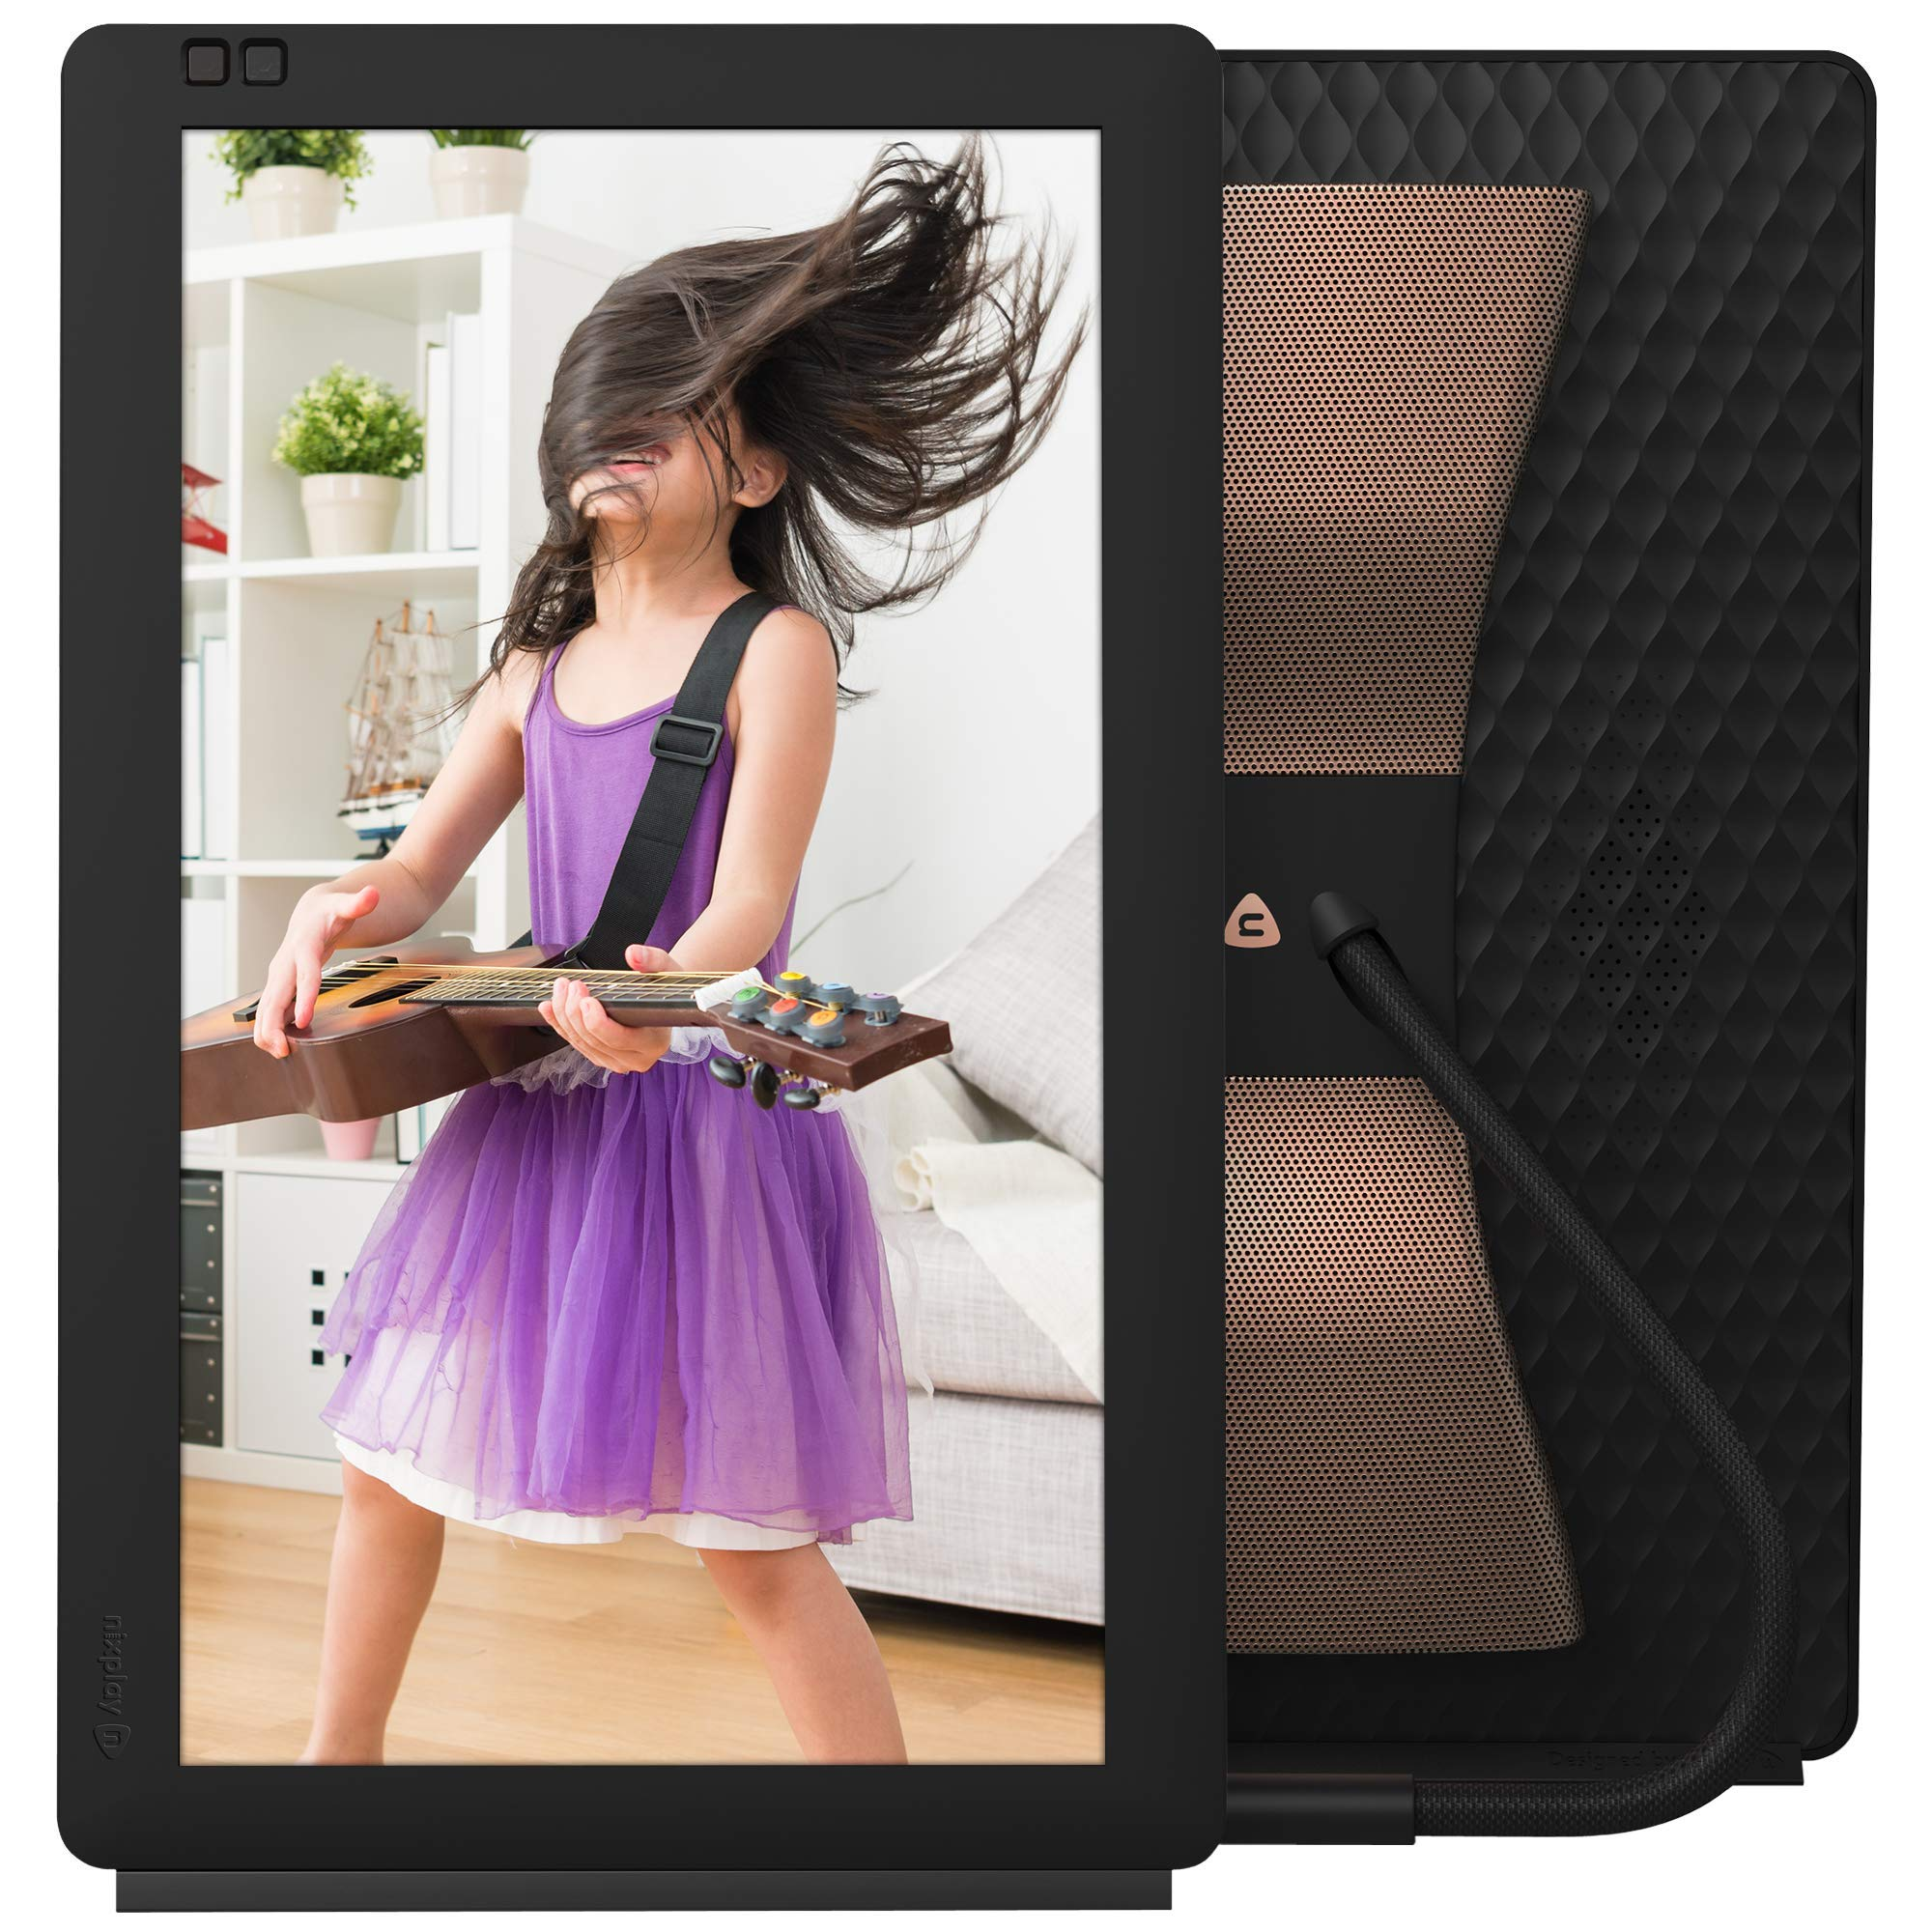 Nixplay Seed Wave 13.3 Inch Digital Wi-Fi Photo Frame W13C Black - Full HD Frame with Bluetooth Speakers, Motion Sensor and 10GB Storage, Display and Share Photos via The Nixplay Mobile App by nixplay